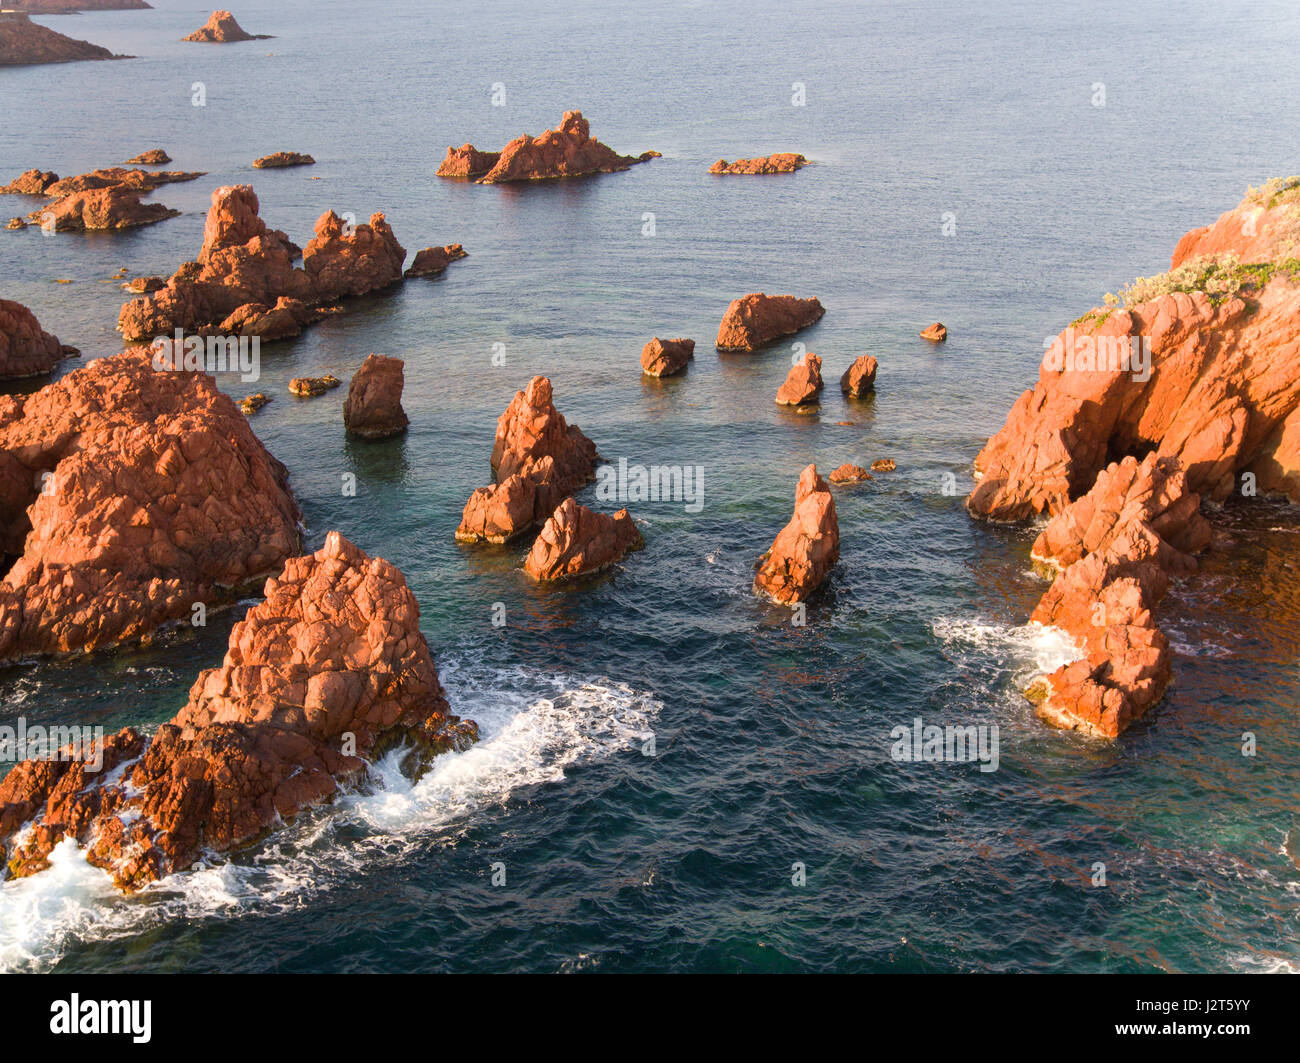 NUMEROUS SEA PINNACLES OFF THE COAST OF THE ESTEREL MASSIF (aerial view). Saint-Raphaël, Var, French Riviera, - Stock Image